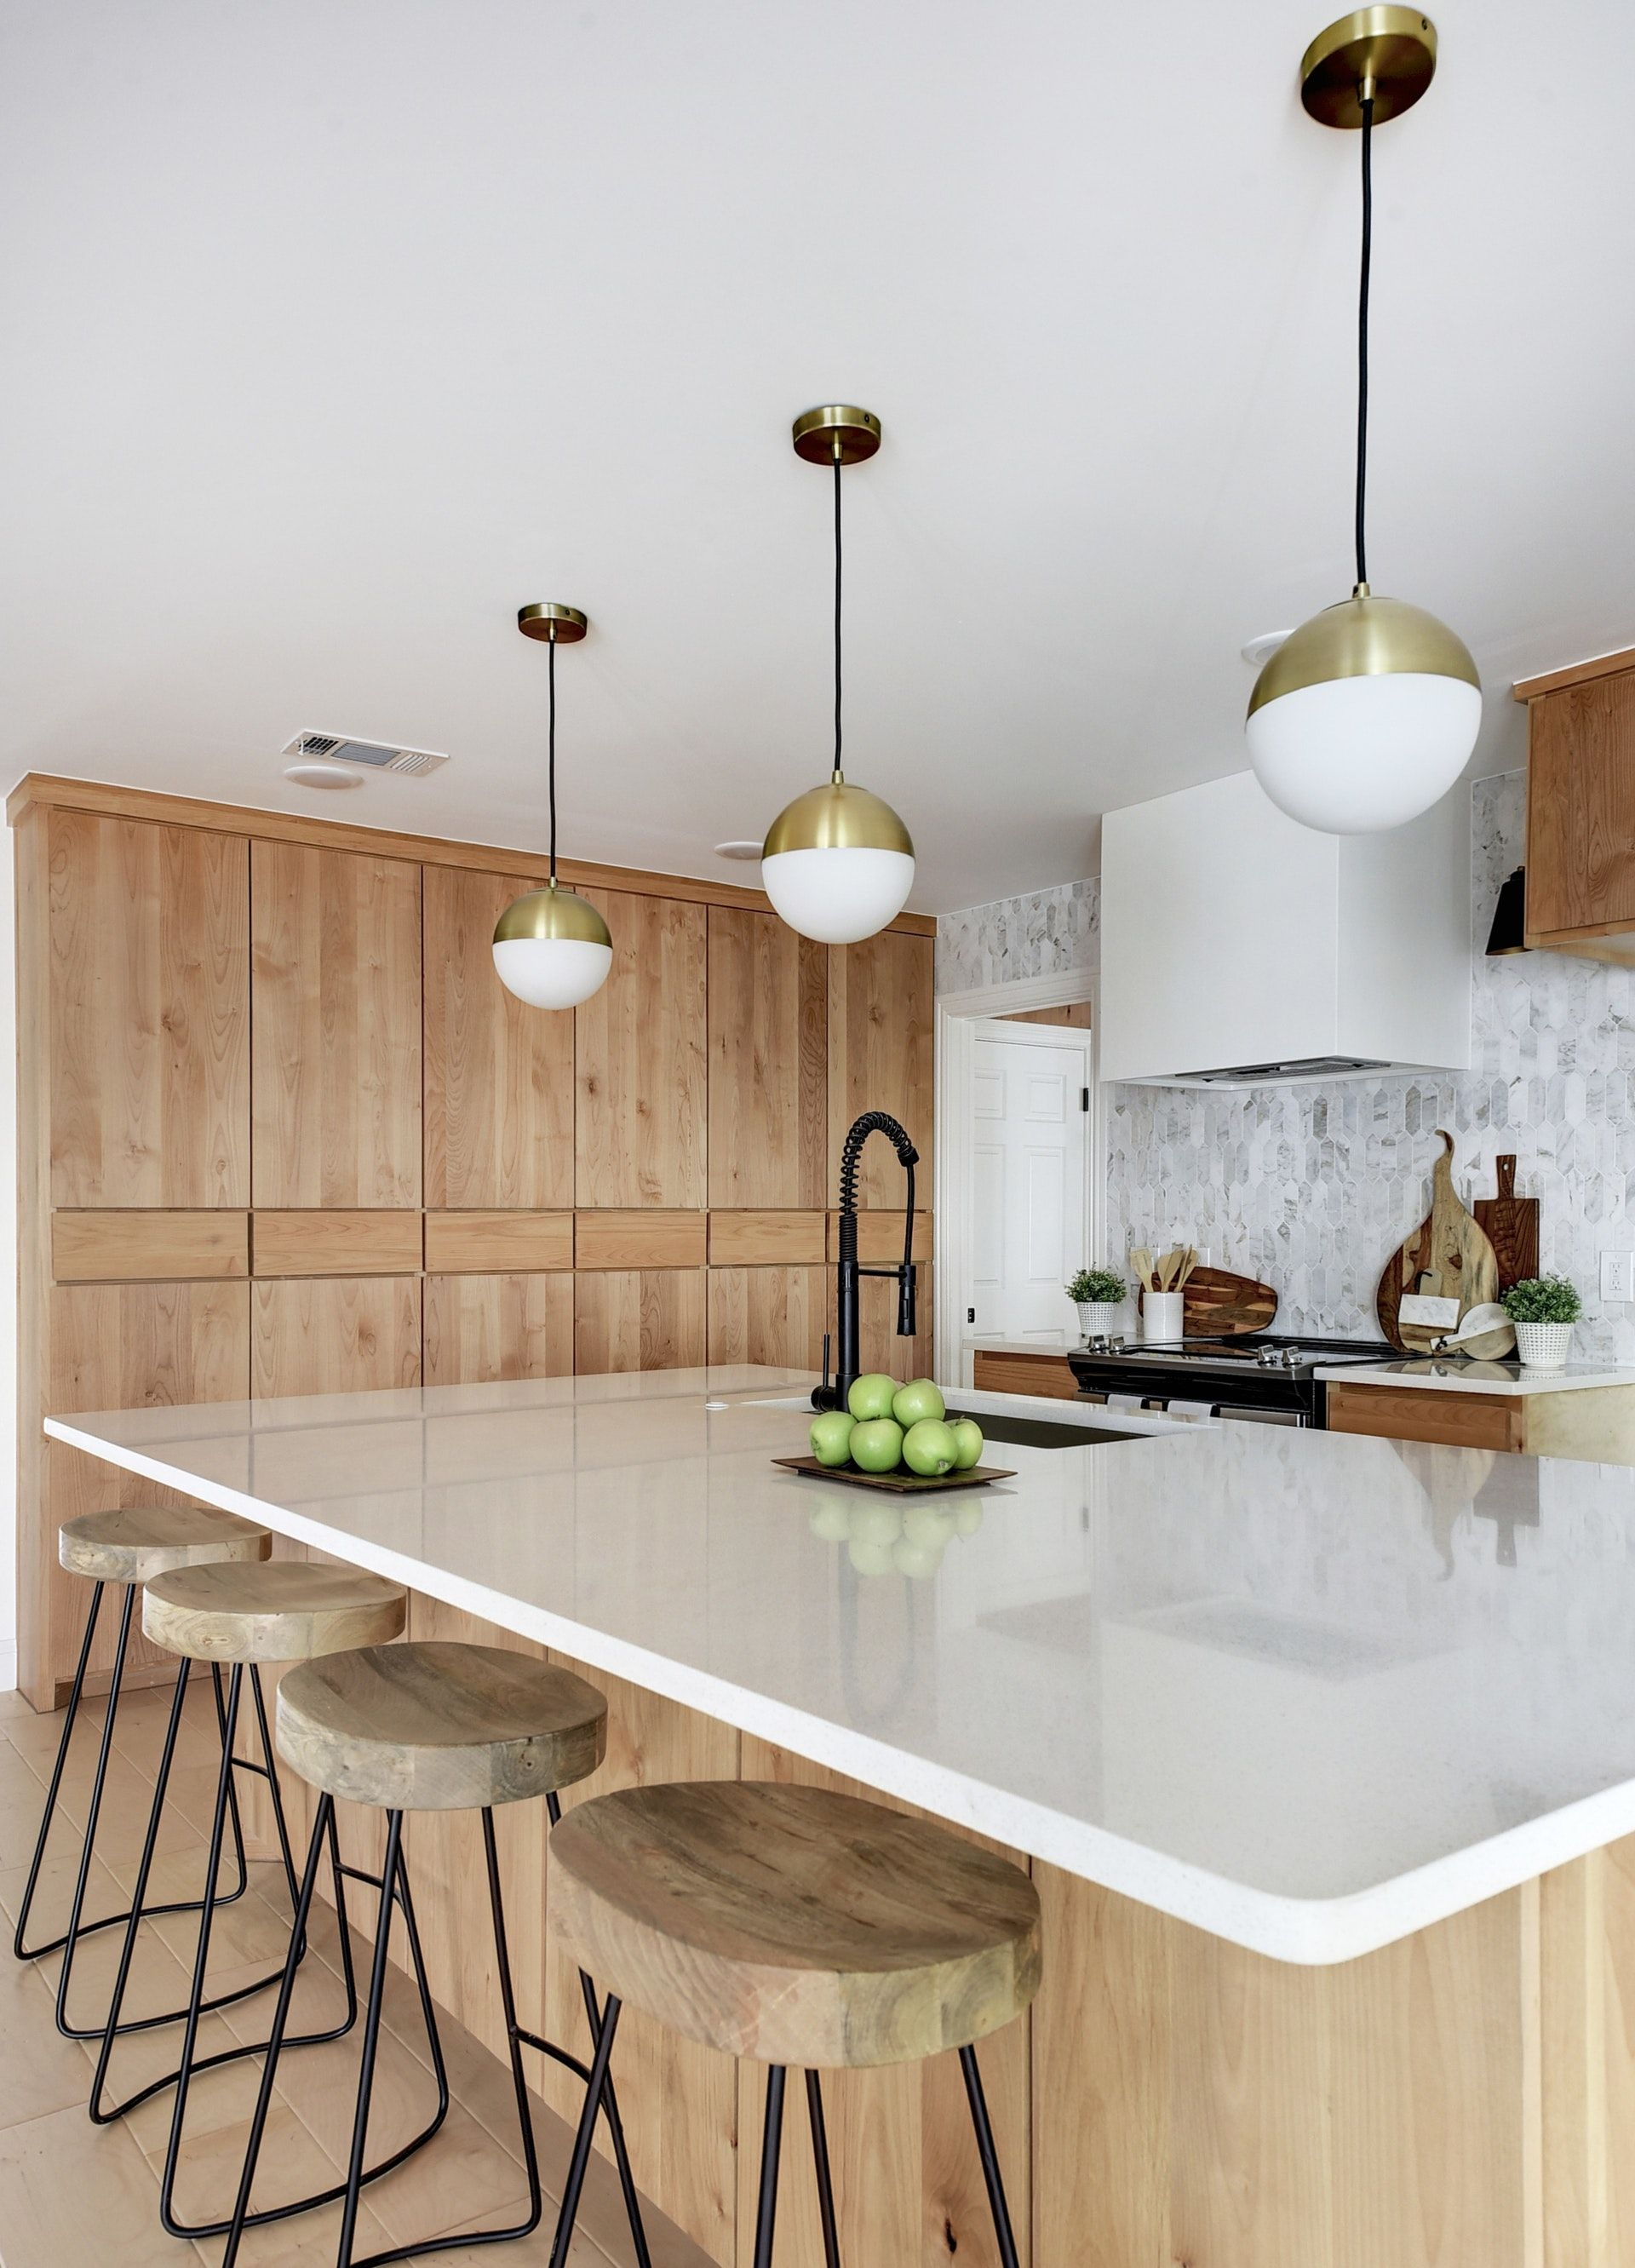 Open Kitchen With Flat Front Natural Alder Wood Cabinets Light Wood Floors Globe Pendants With Wh Alder Kitchen Cabinets Light Wood Kitchens Kitchen Flooring